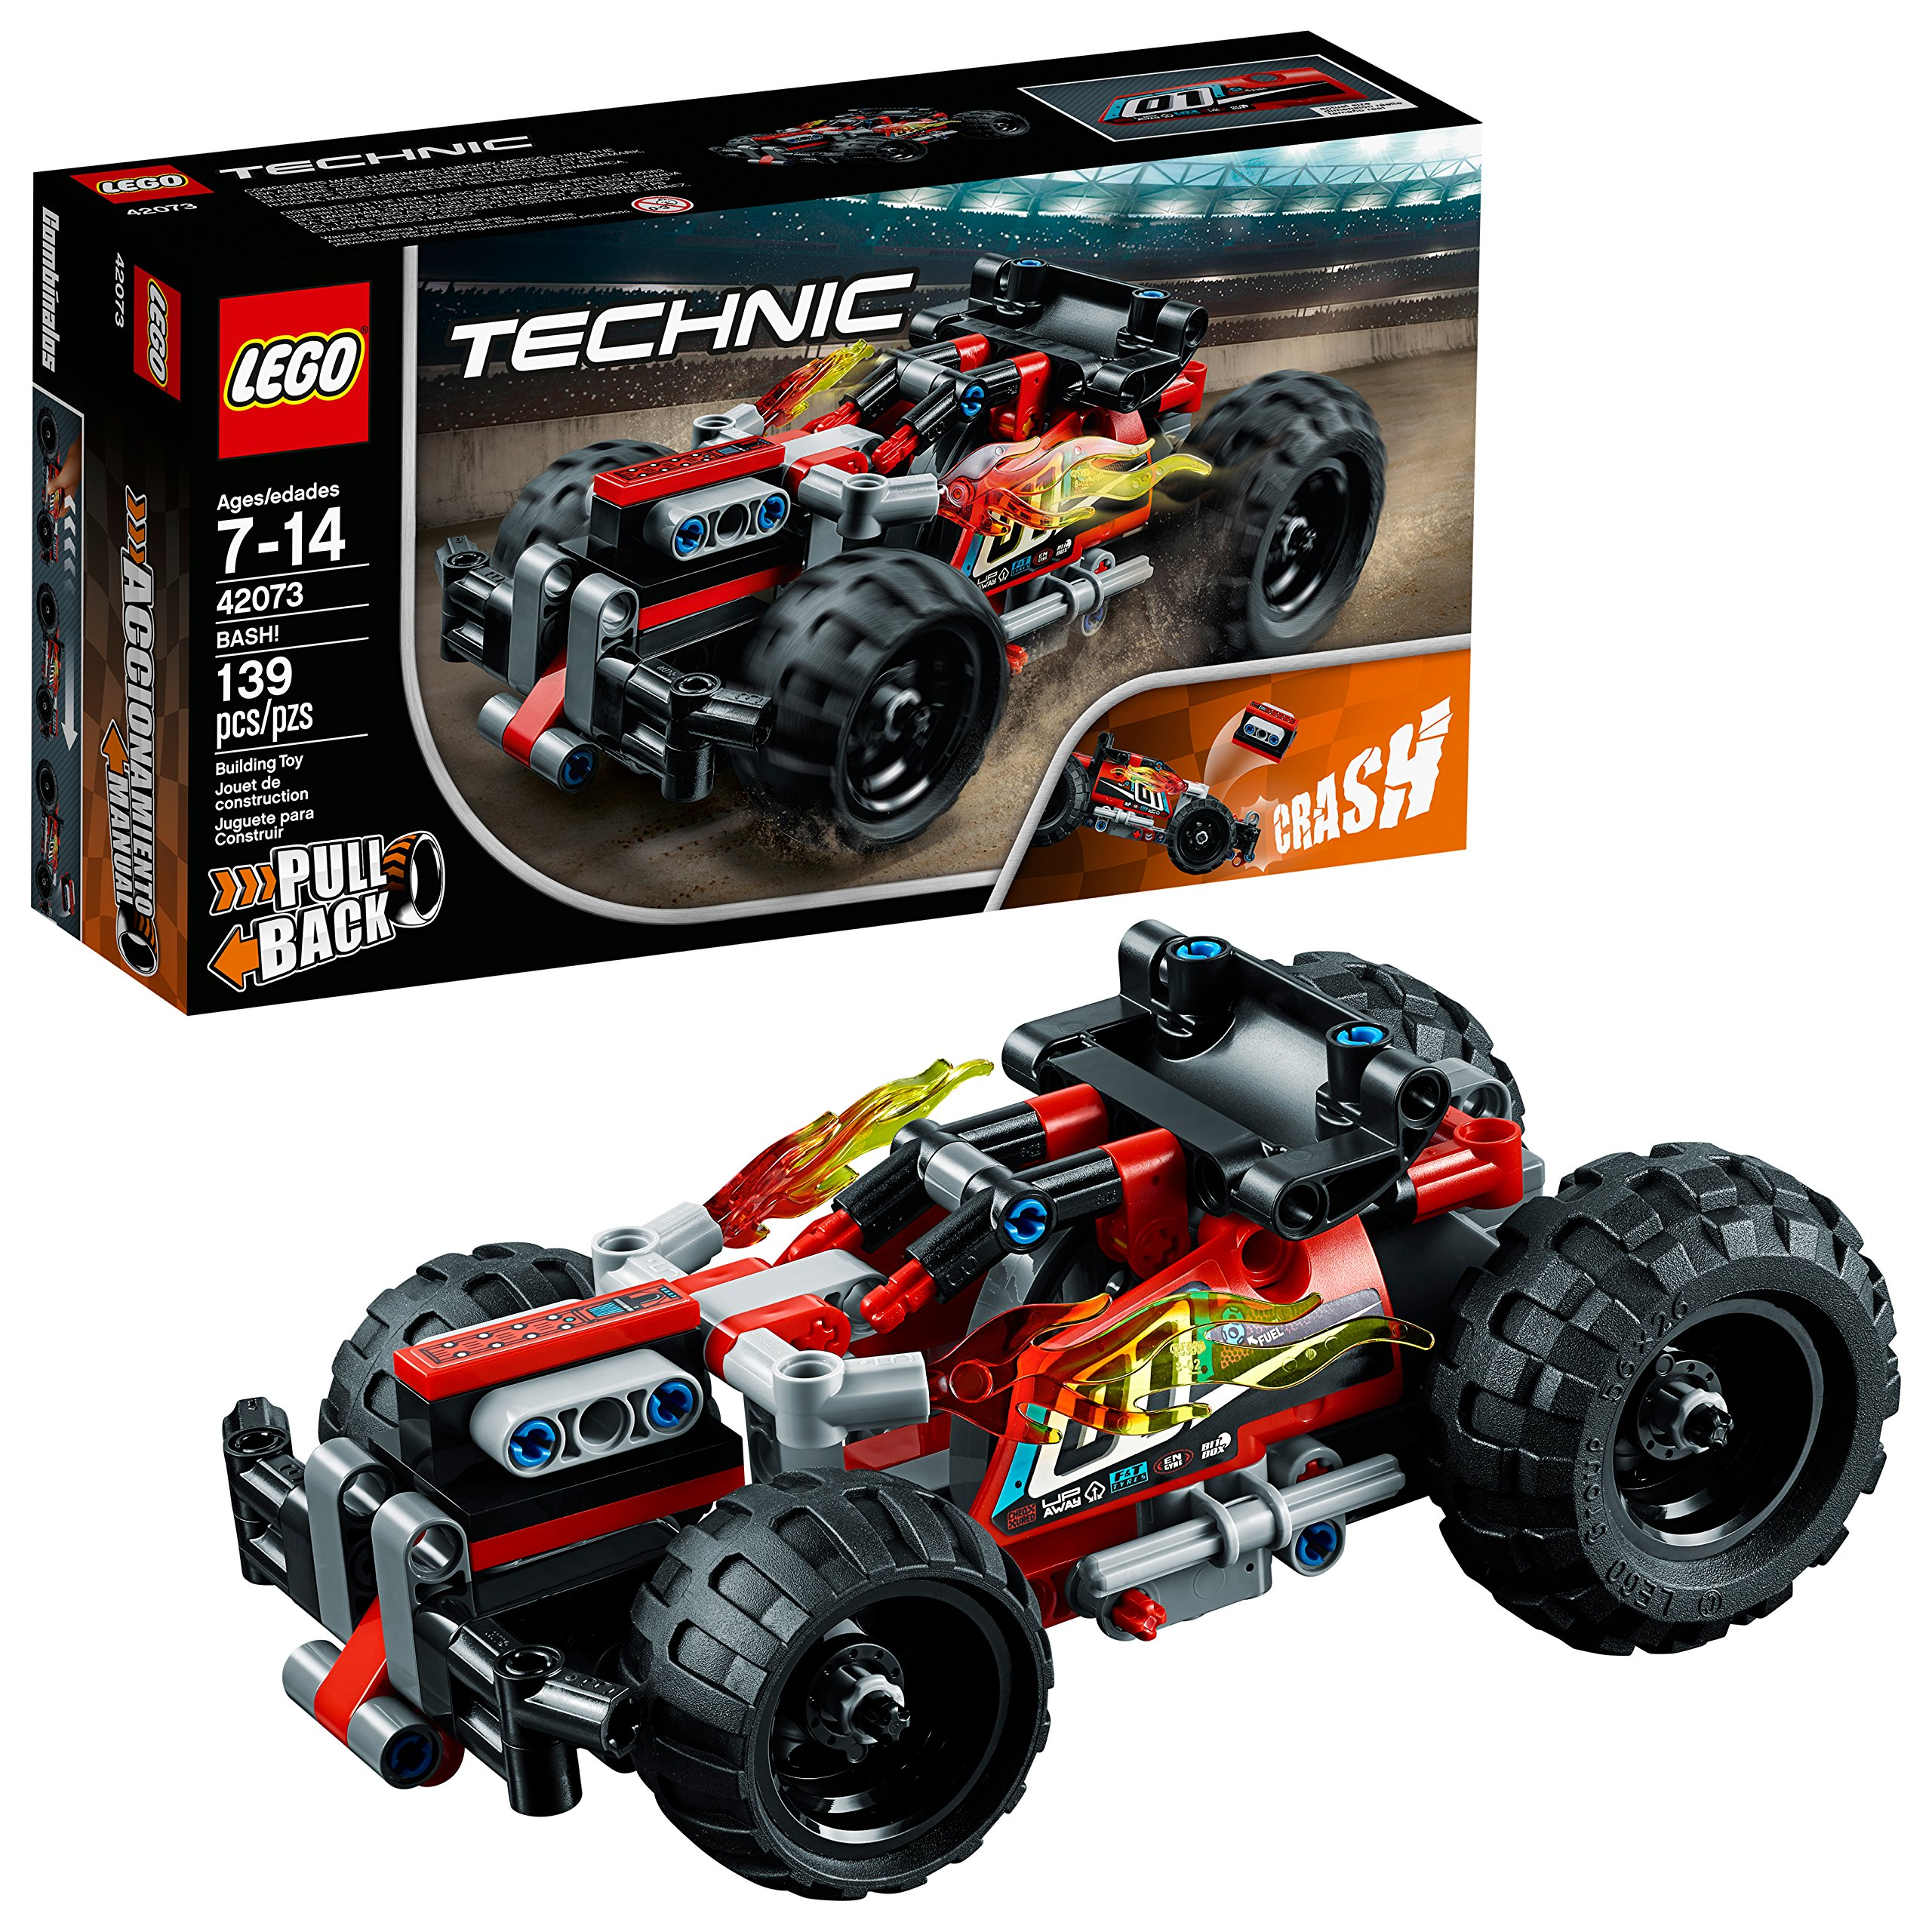 LEGO Technic BASH! 42073 Building Kit (139 Pieces) by LEGO